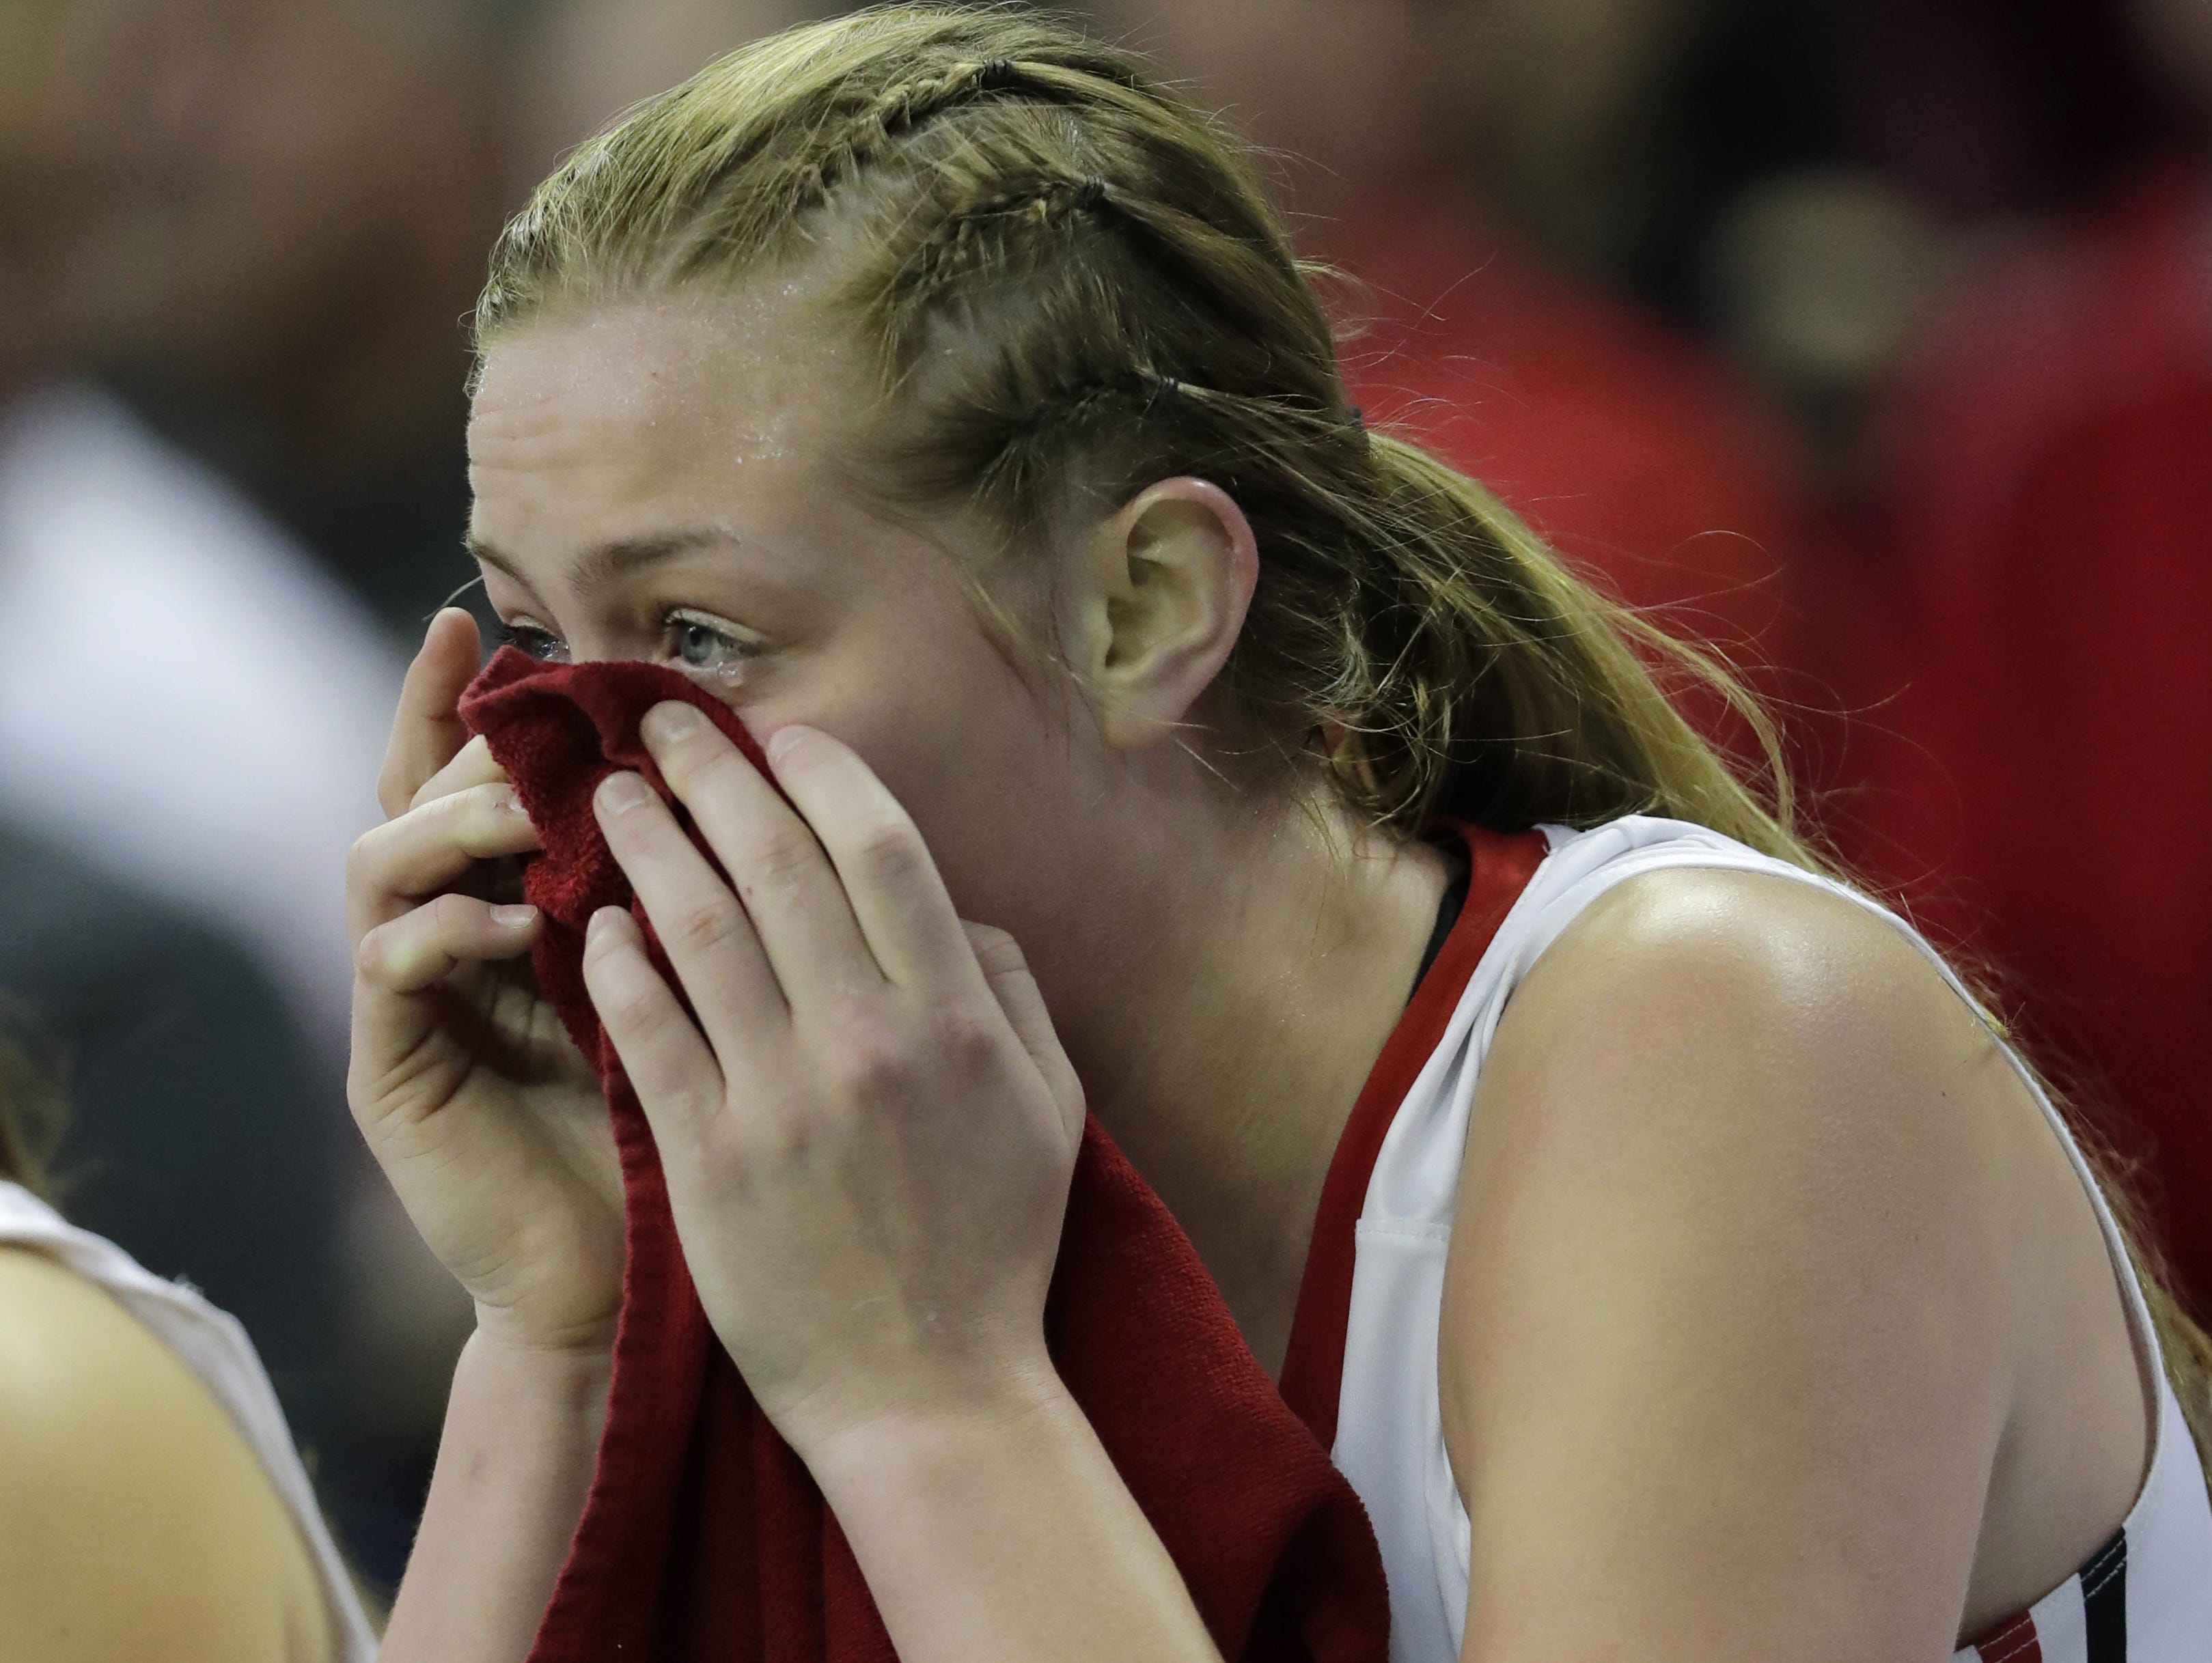 Hortonville High School's Morgan Allen reacts after fouling out late in the game against Cudahy High School during their WIAA Division 2 state tournament semifinal girls basketball game Friday, March 10, 2017, at the Resch Center in Ashwaubenon.